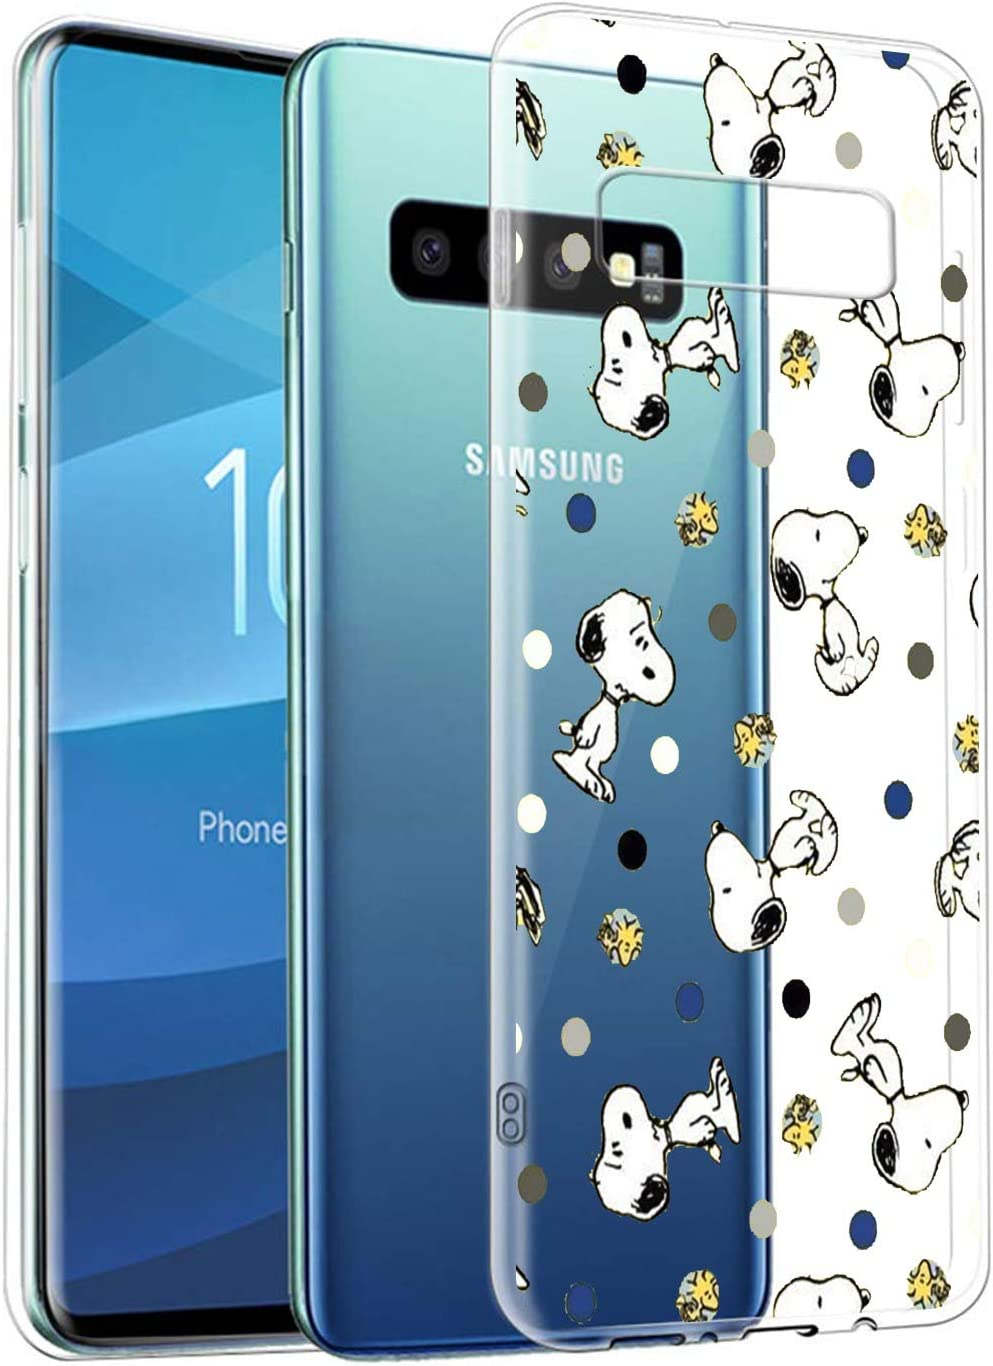 Disney Collection Samsung Galaxy S10 Case Yellow Wallpaper Snoopy Clear Crystal Transparent Uv Printing Back Fit Scratch Resistant Soft Tpu Protective Case Amazon Ca Cell Phones Accessories